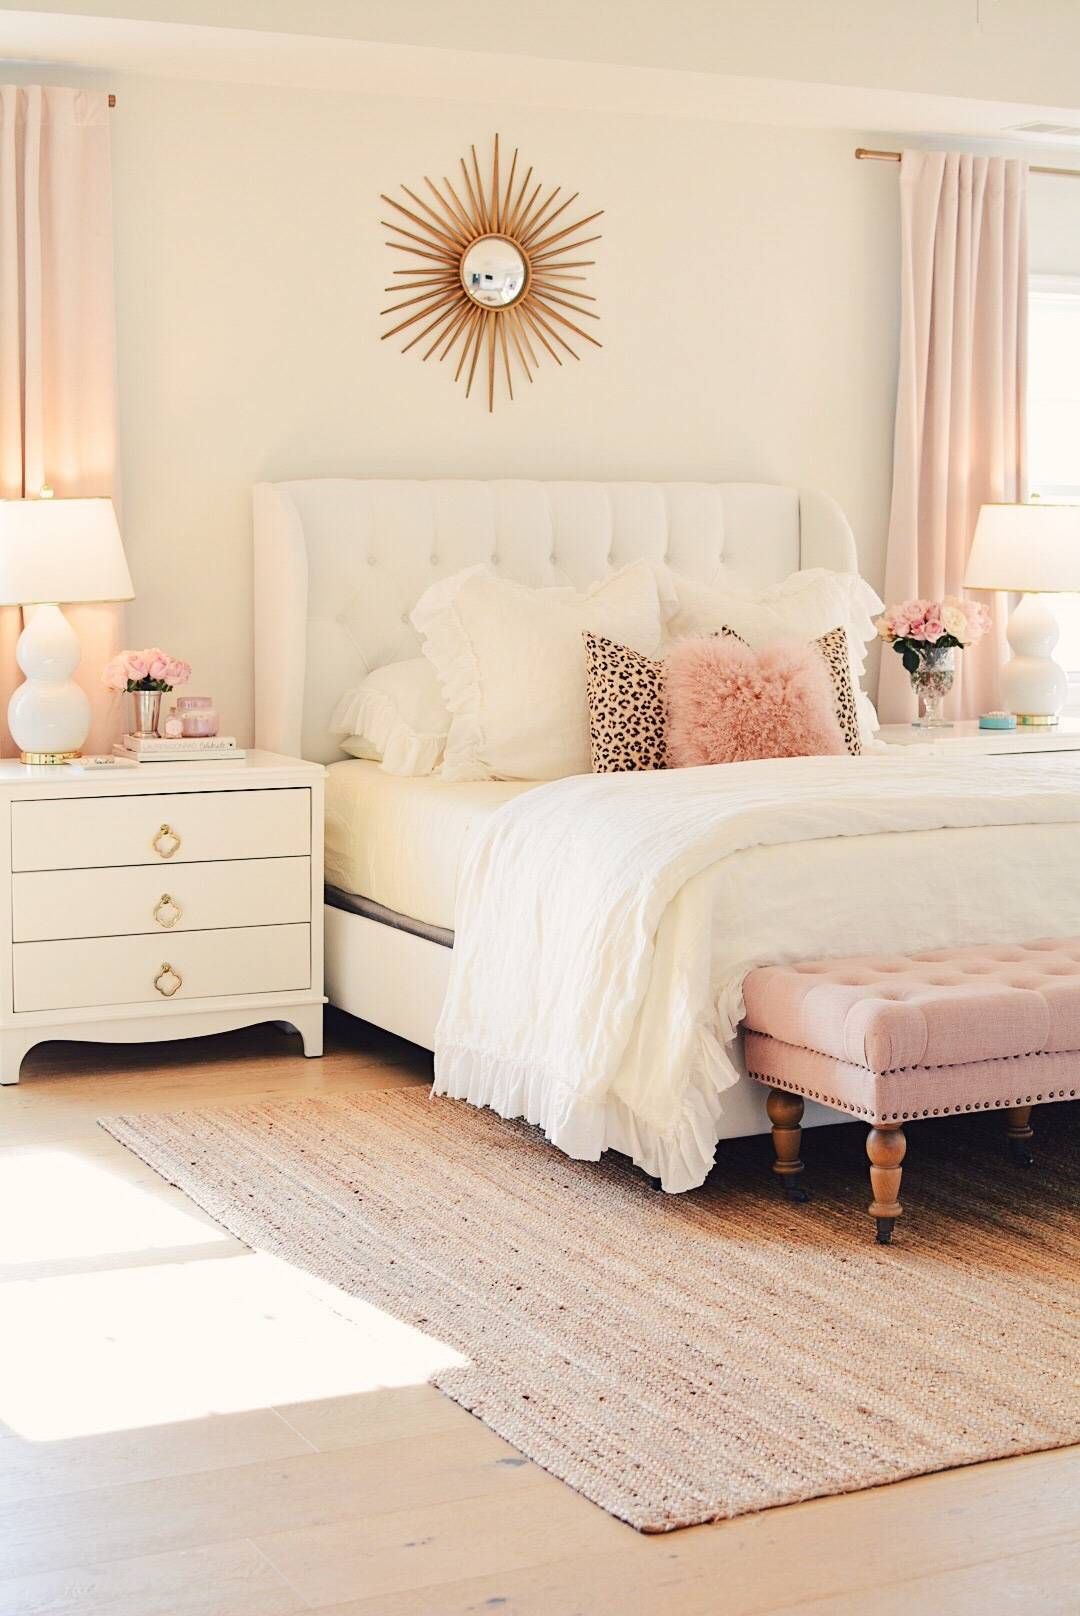 Bedroom Decor Ideas A Romantic Master Bedroom Makeover The Pink Dream Mismatched Living Room Furniture Apartment Bedroom Decor Bedroom Decorating Tips